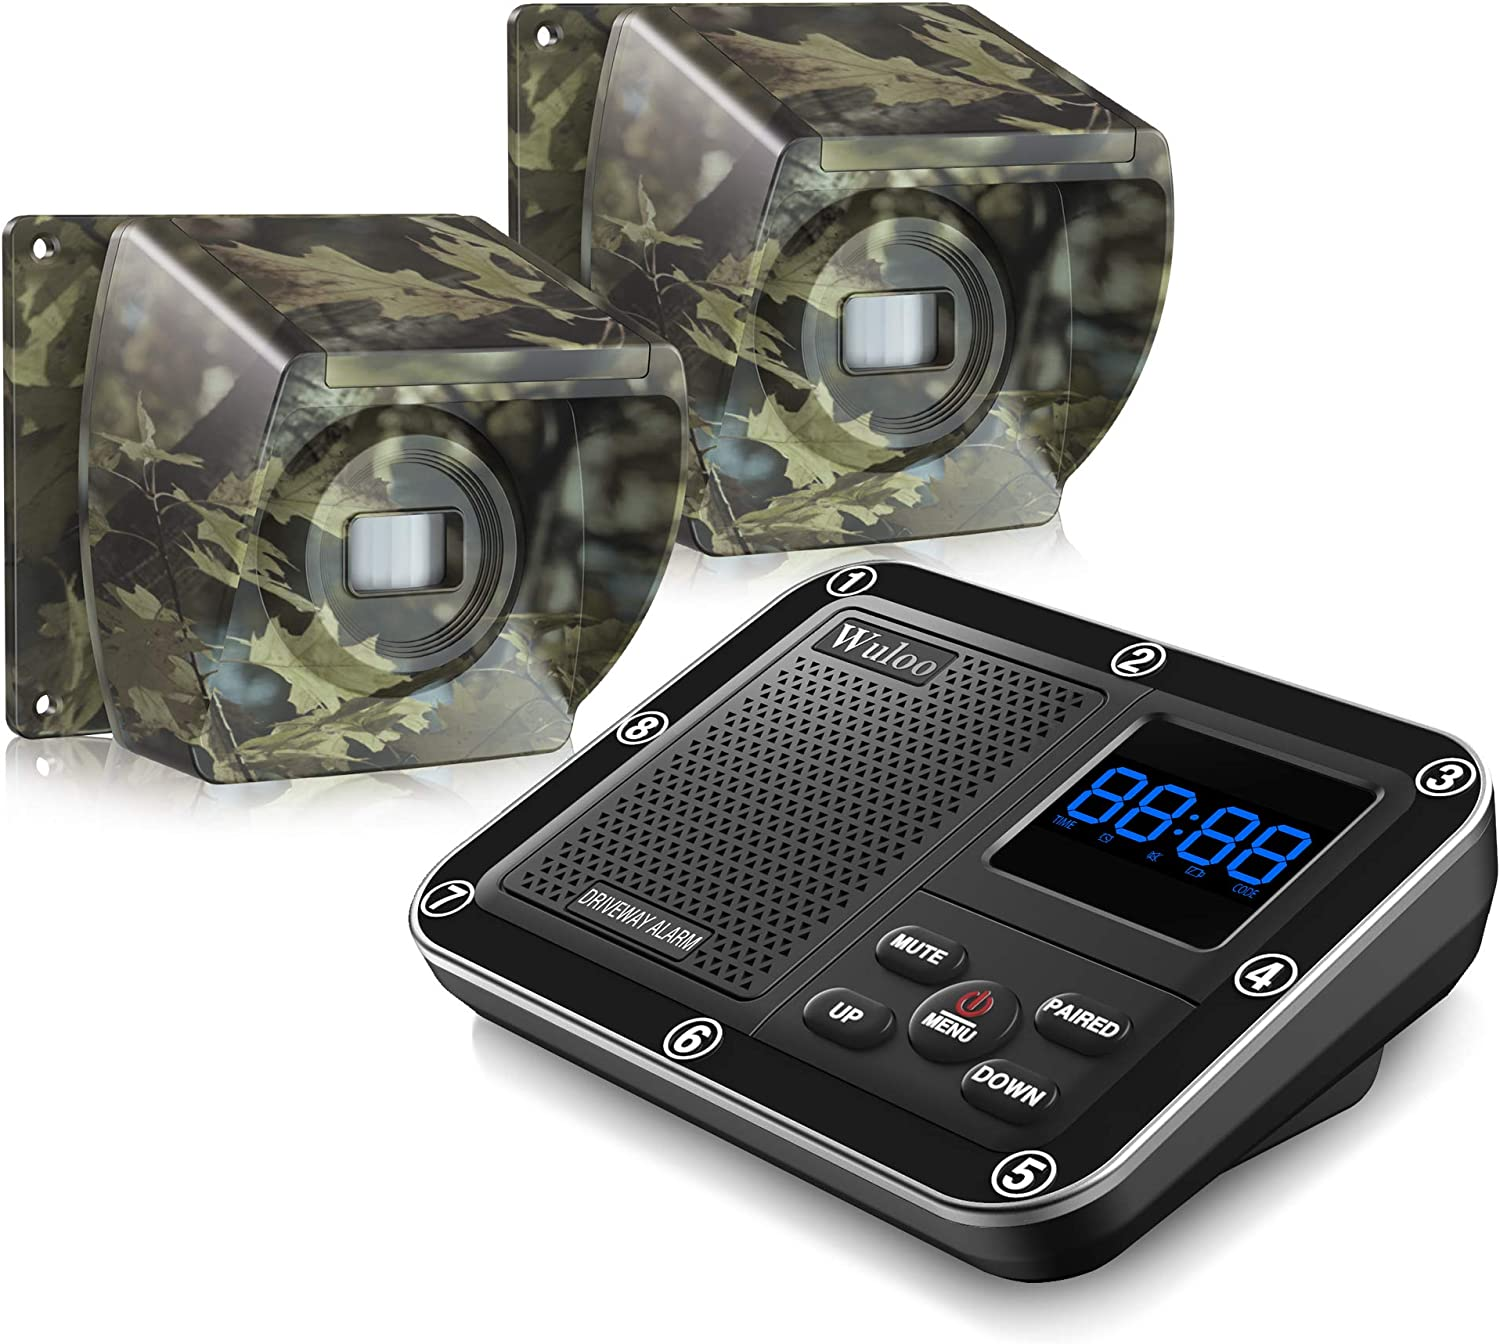 1800 Ft Wireless Outside Driveway Alarm Outdoor Motion Sensor & Detector Driveway Alert System, Rechargeable Battery/Weatherproof/Mute Mode/Clock and Alarm Functional (1&2-Camouflage)